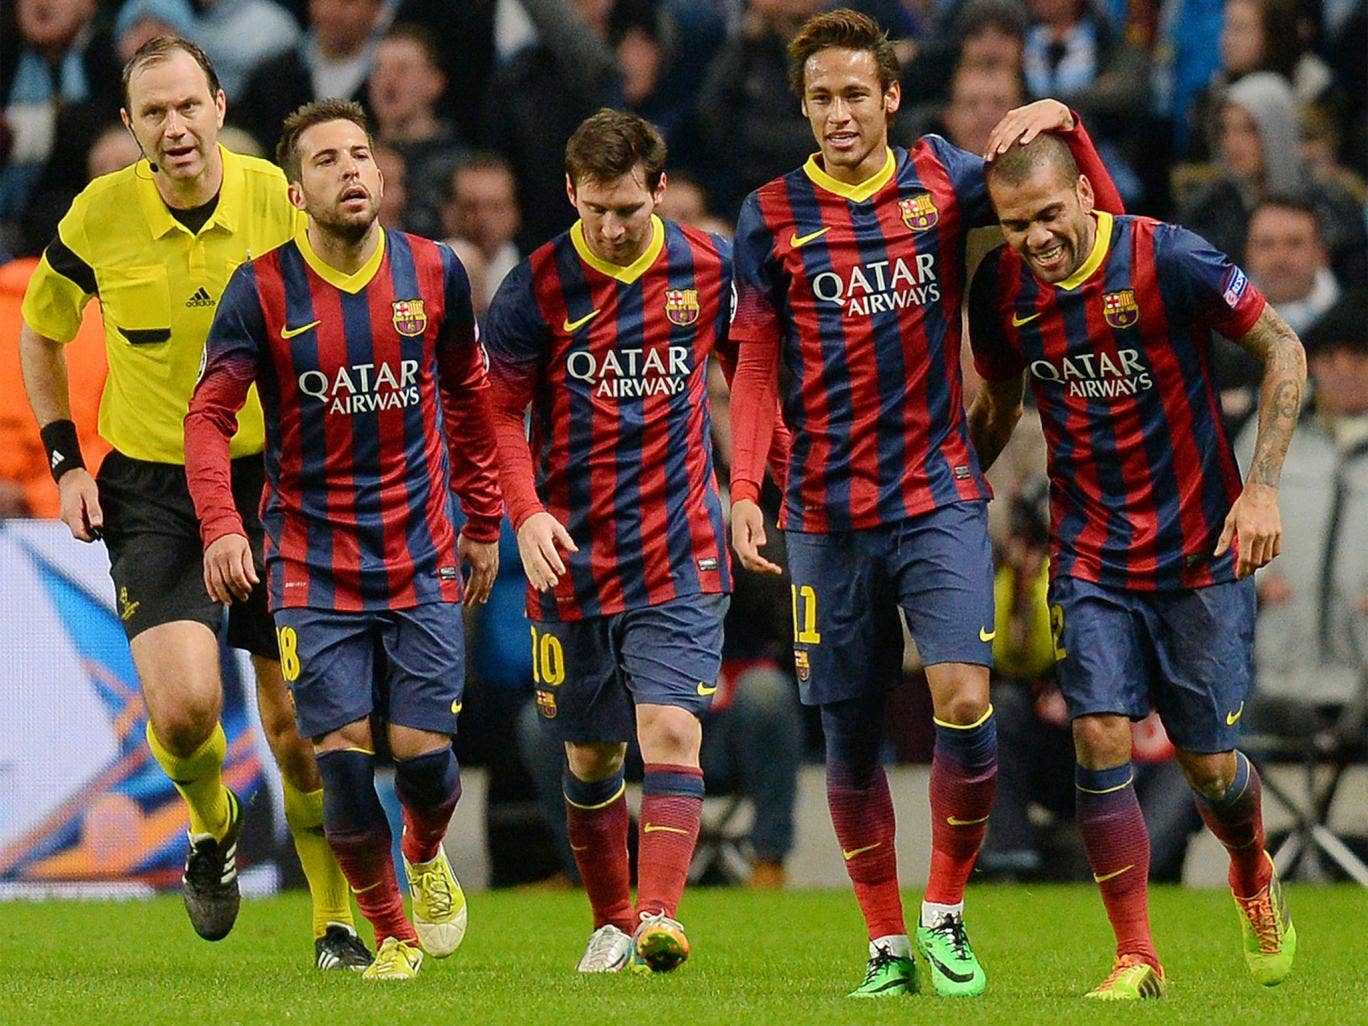 Barcelona players celebrate Dani Alves' goal - which may have put the tie beyond Manchester City